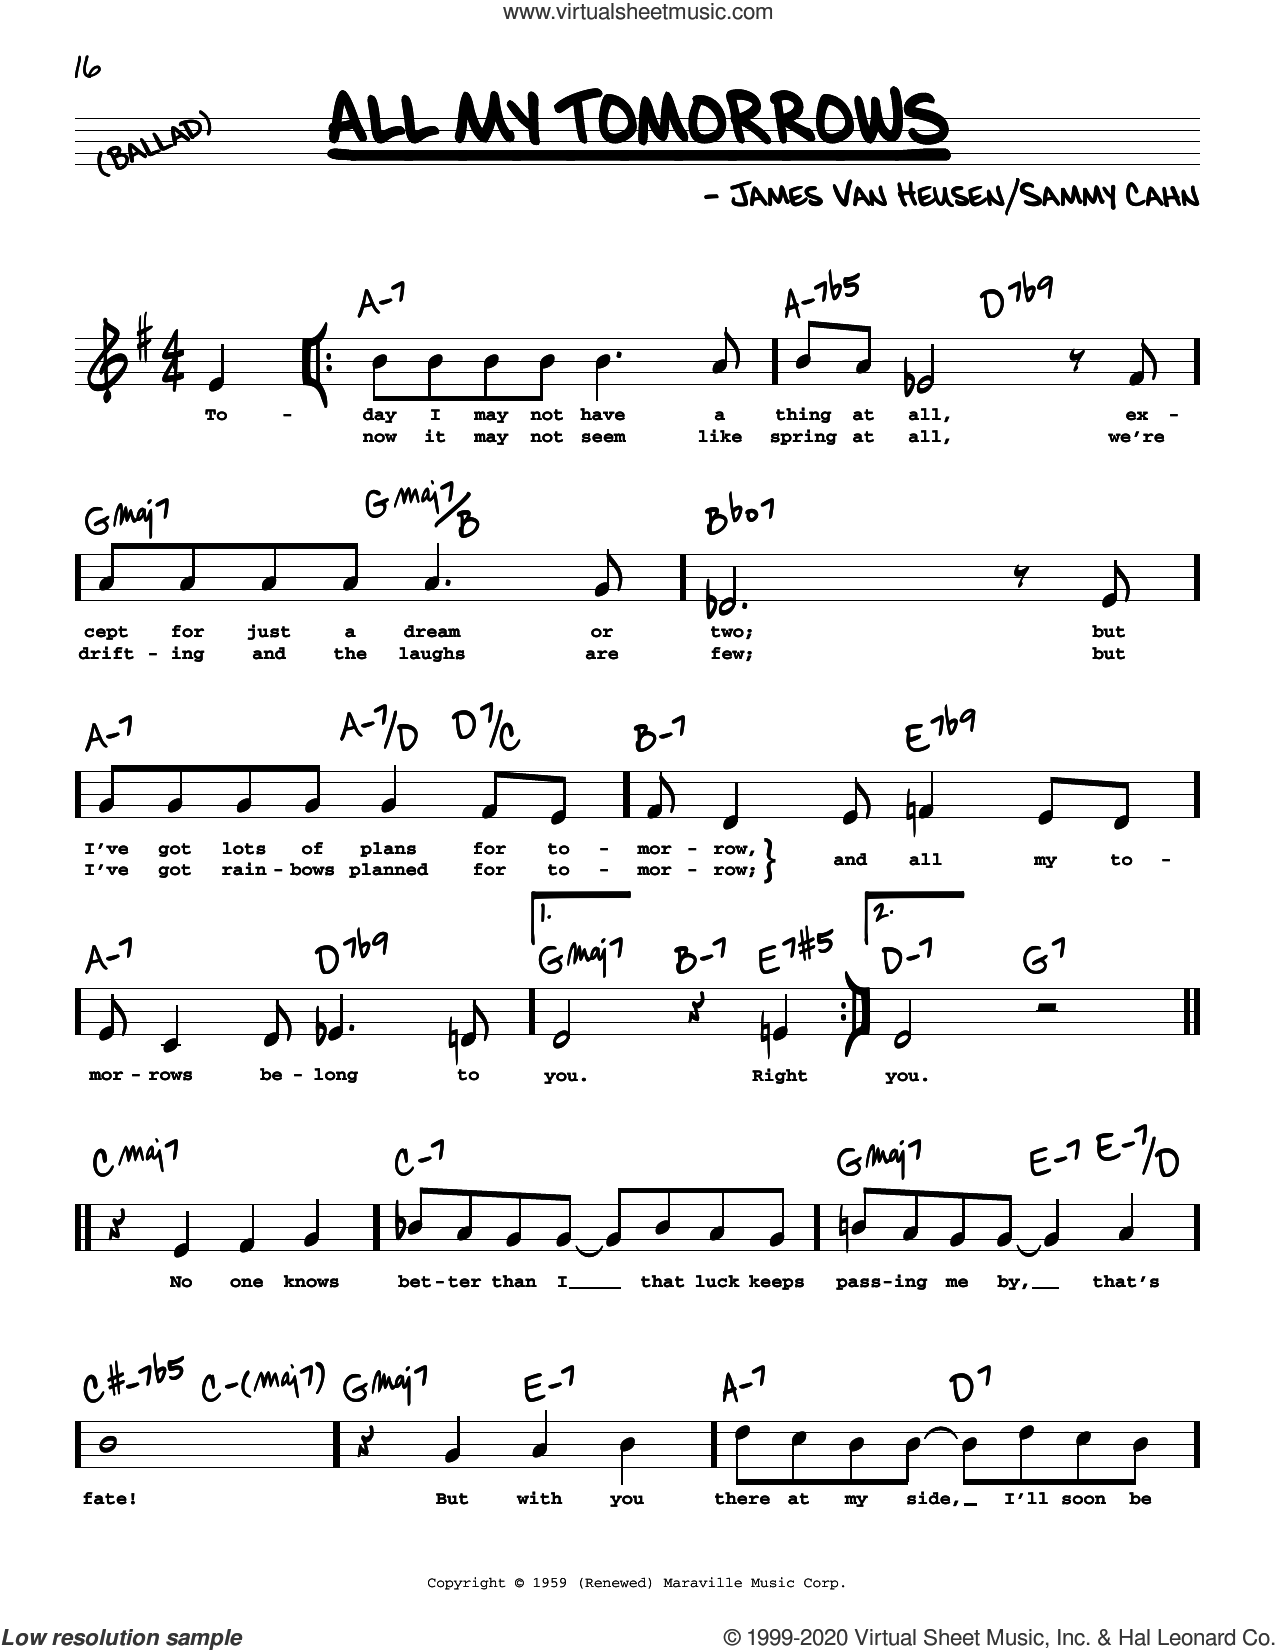 All My Tomorrows (High Voice) sheet music for voice and other instruments (high voice) by Sammy Cahn and Jimmy van Heusen, intermediate skill level